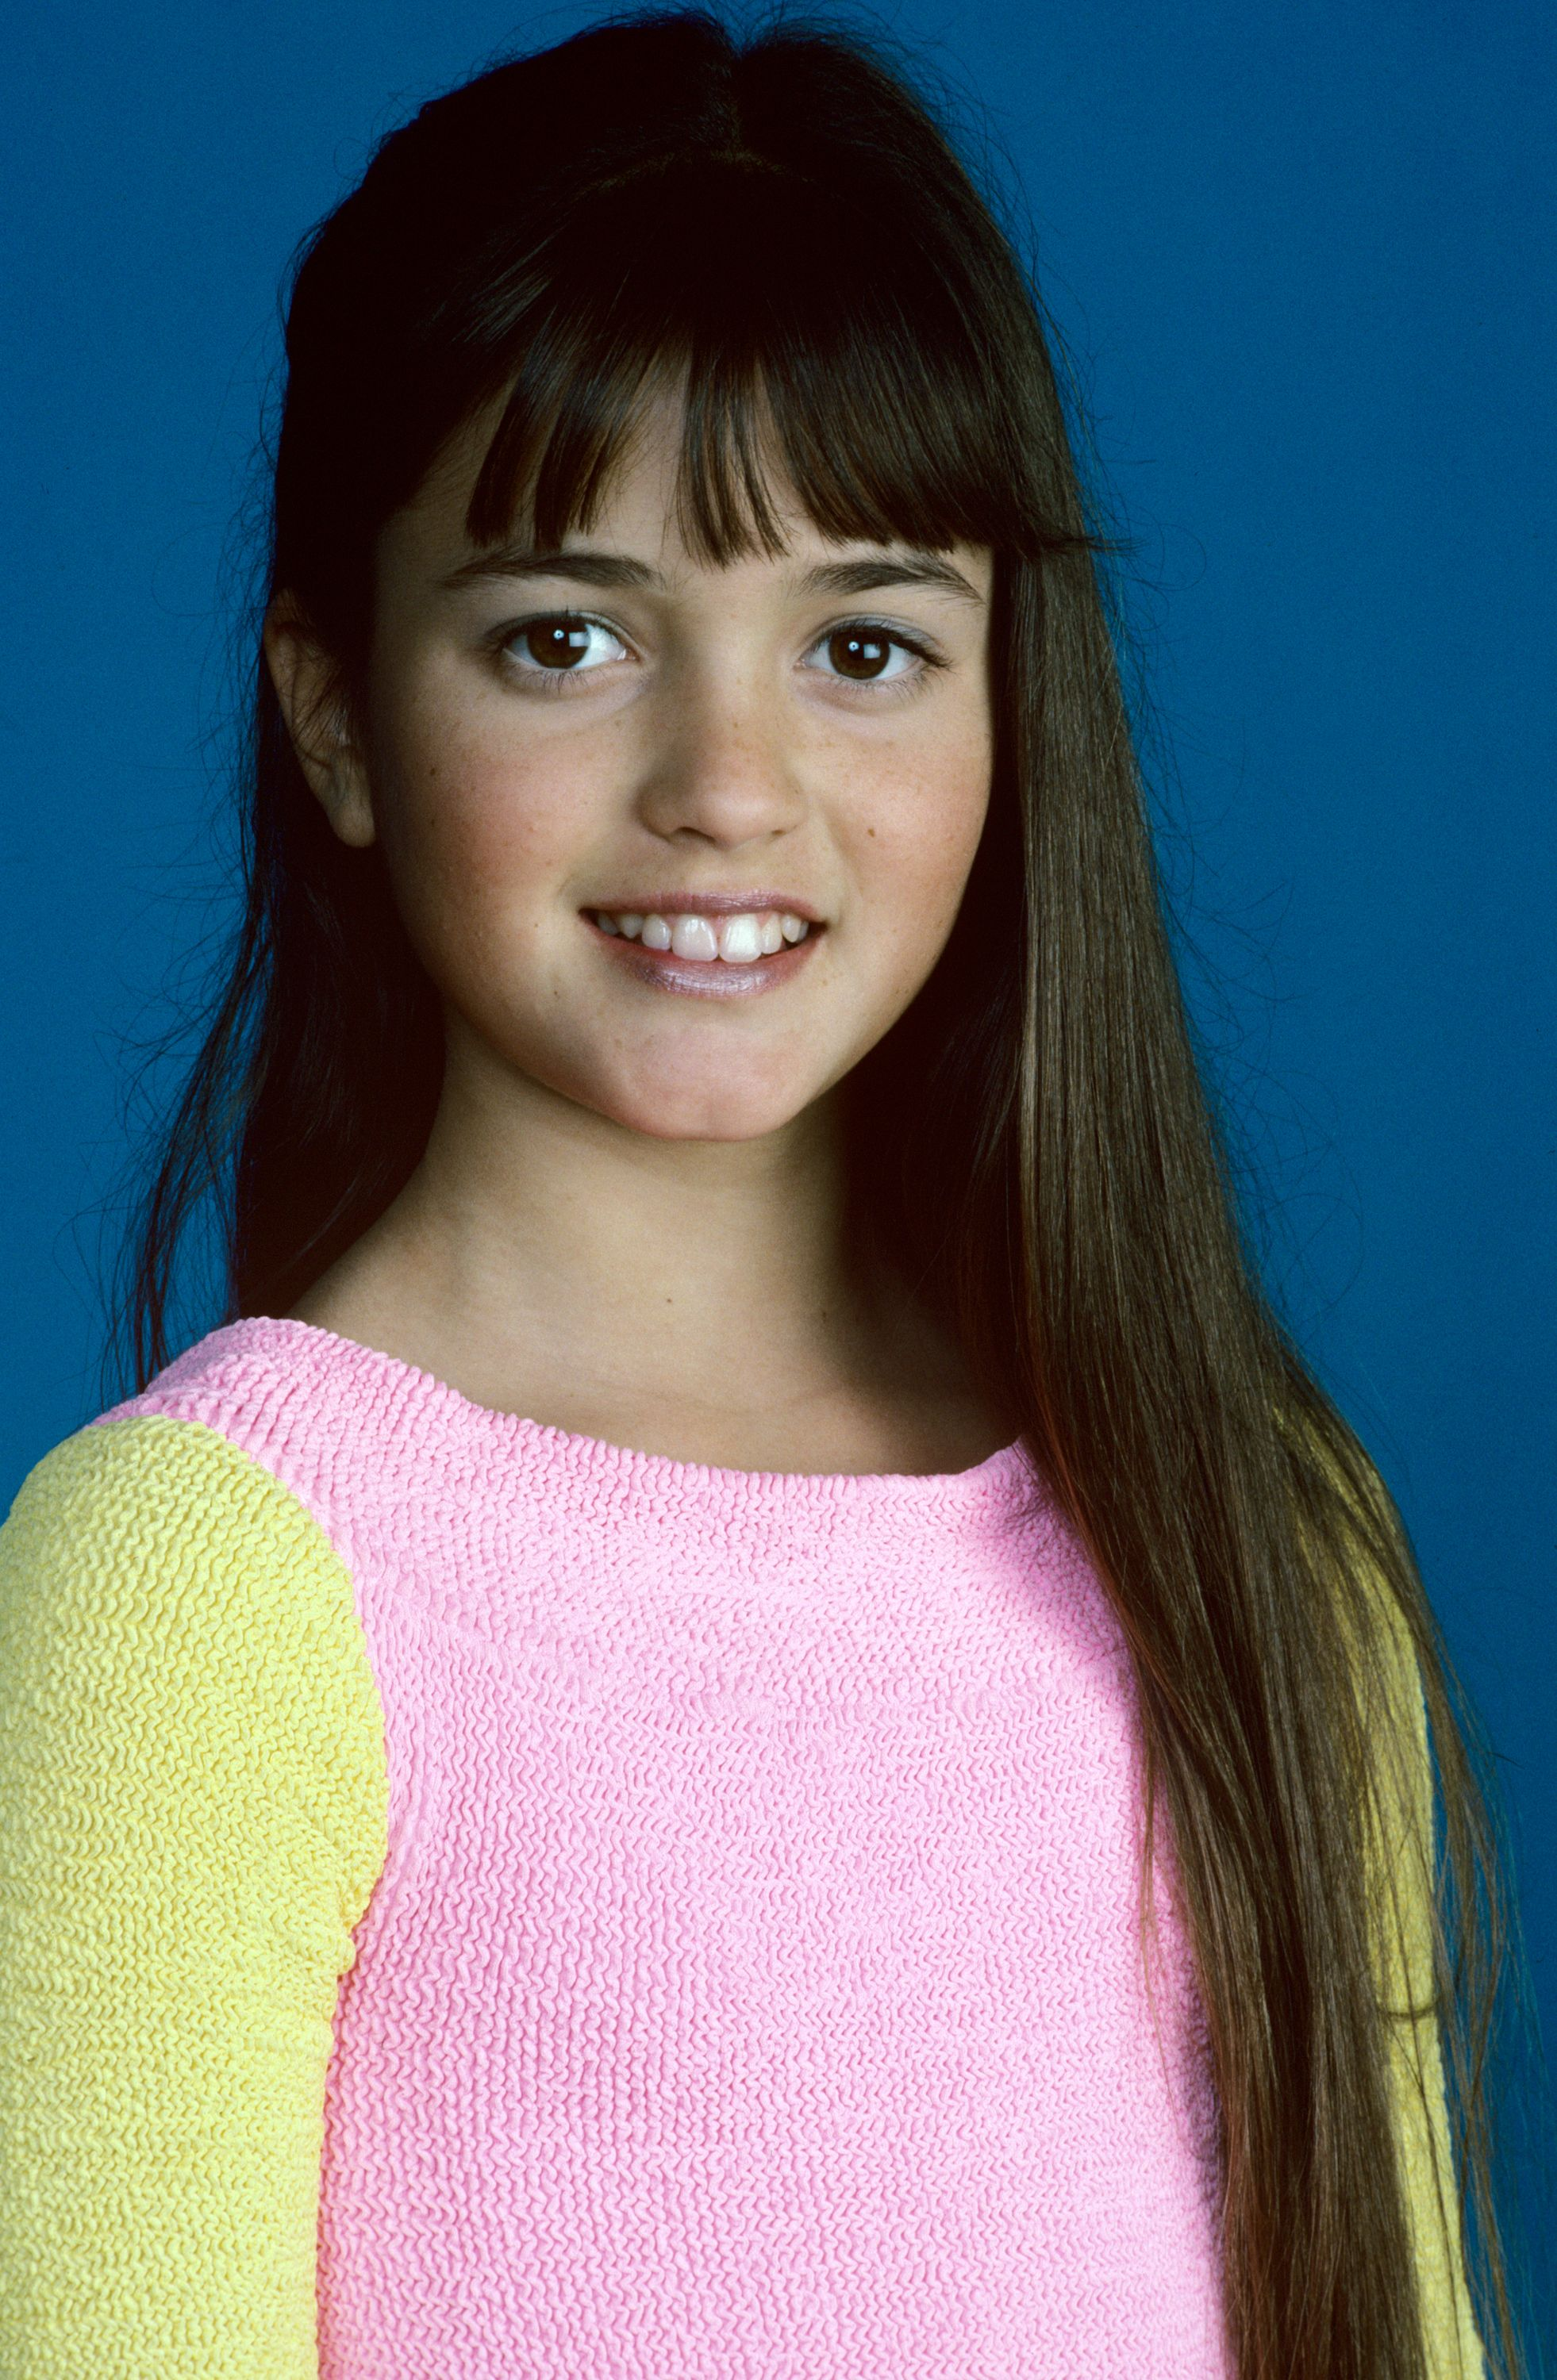 Beloved Child Stars: Where Are They Now - Famous Child